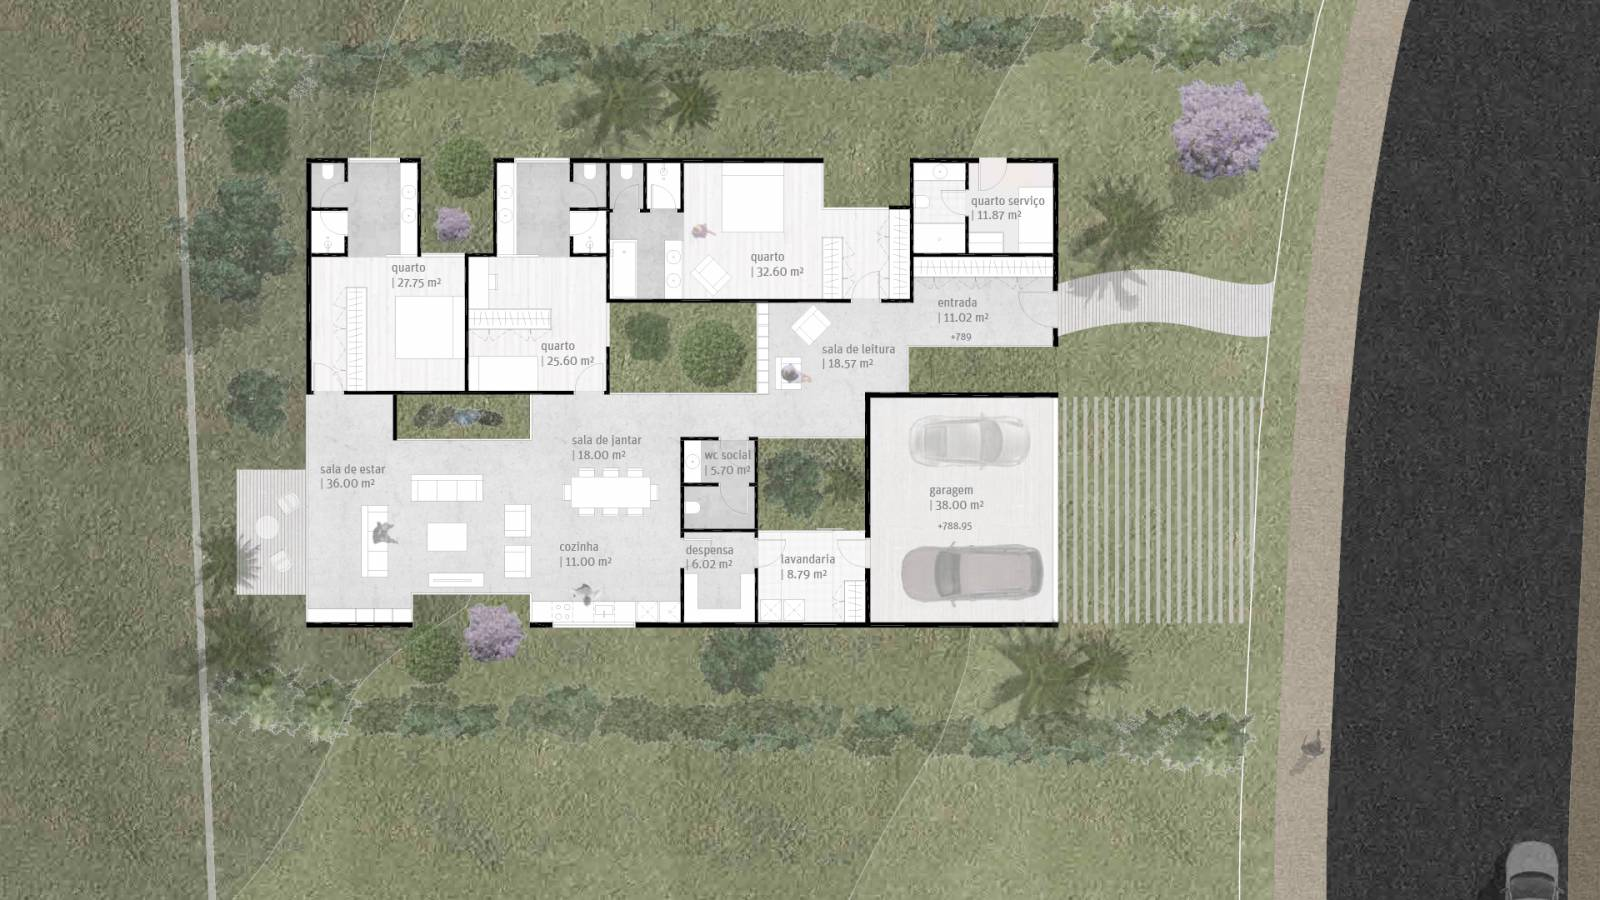 HOUSE #2 - PLAN - 6 case study houses - SPOL Architects